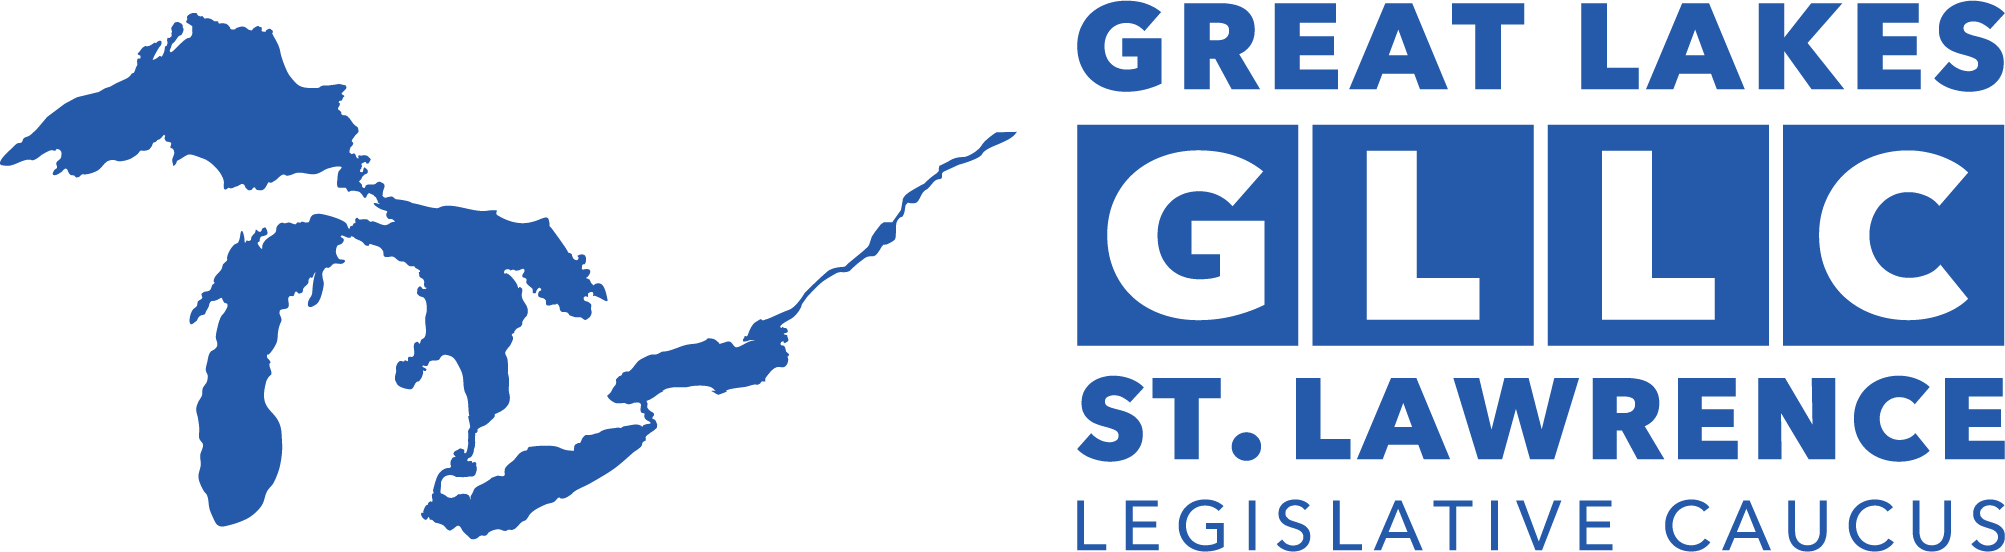 Great Lakes-St. Lawrence Legislative Caucus